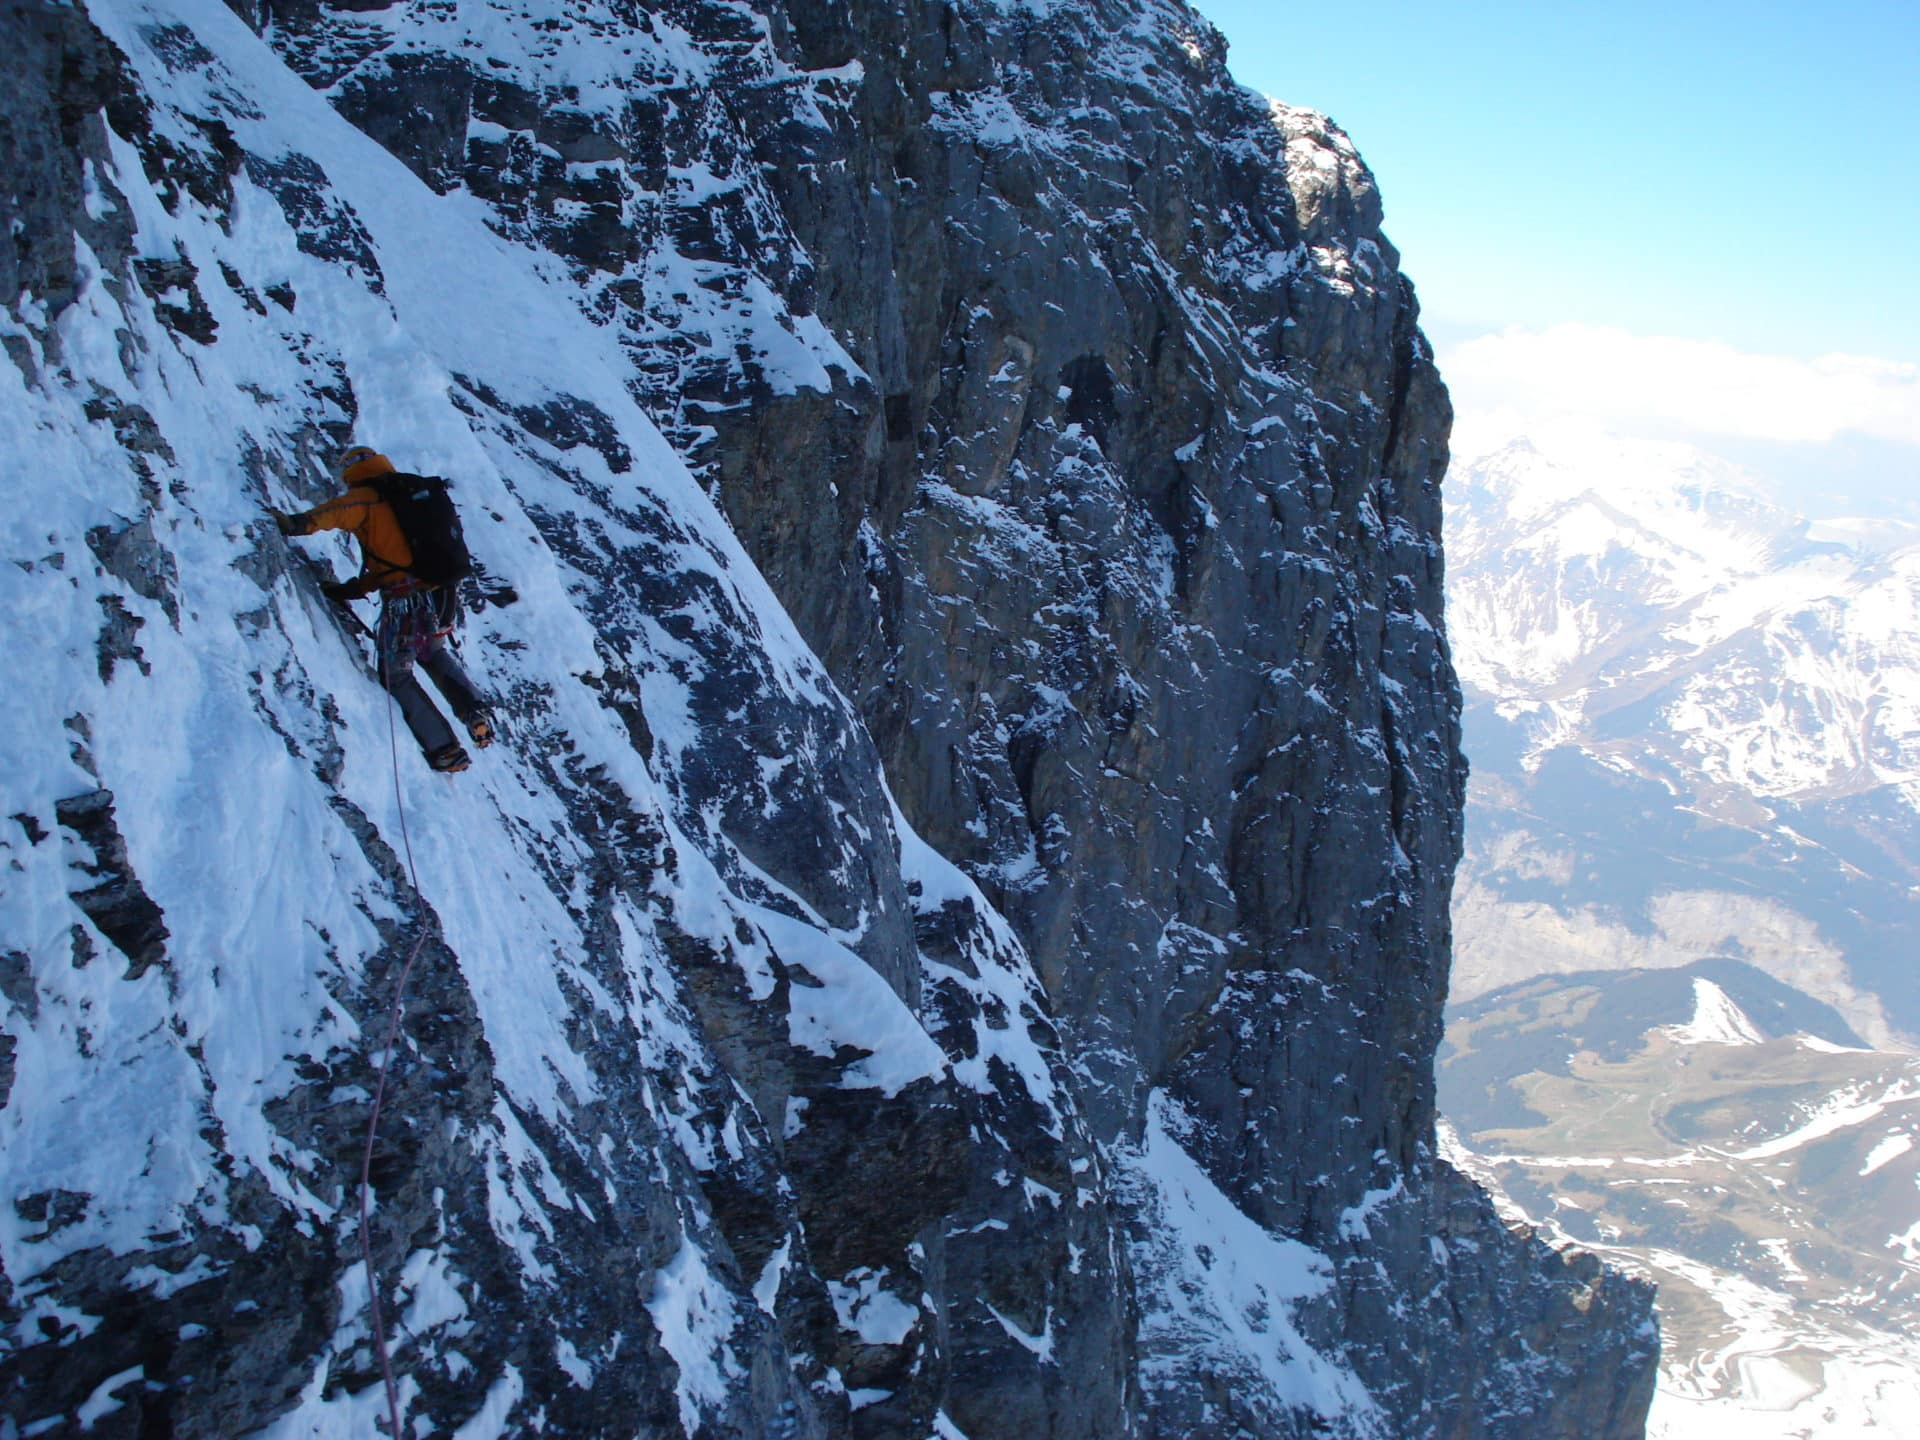 Eiger north face 2 day guided climb 2 day trip certified leader eiger north face 2 day guided climb reheart Choice Image